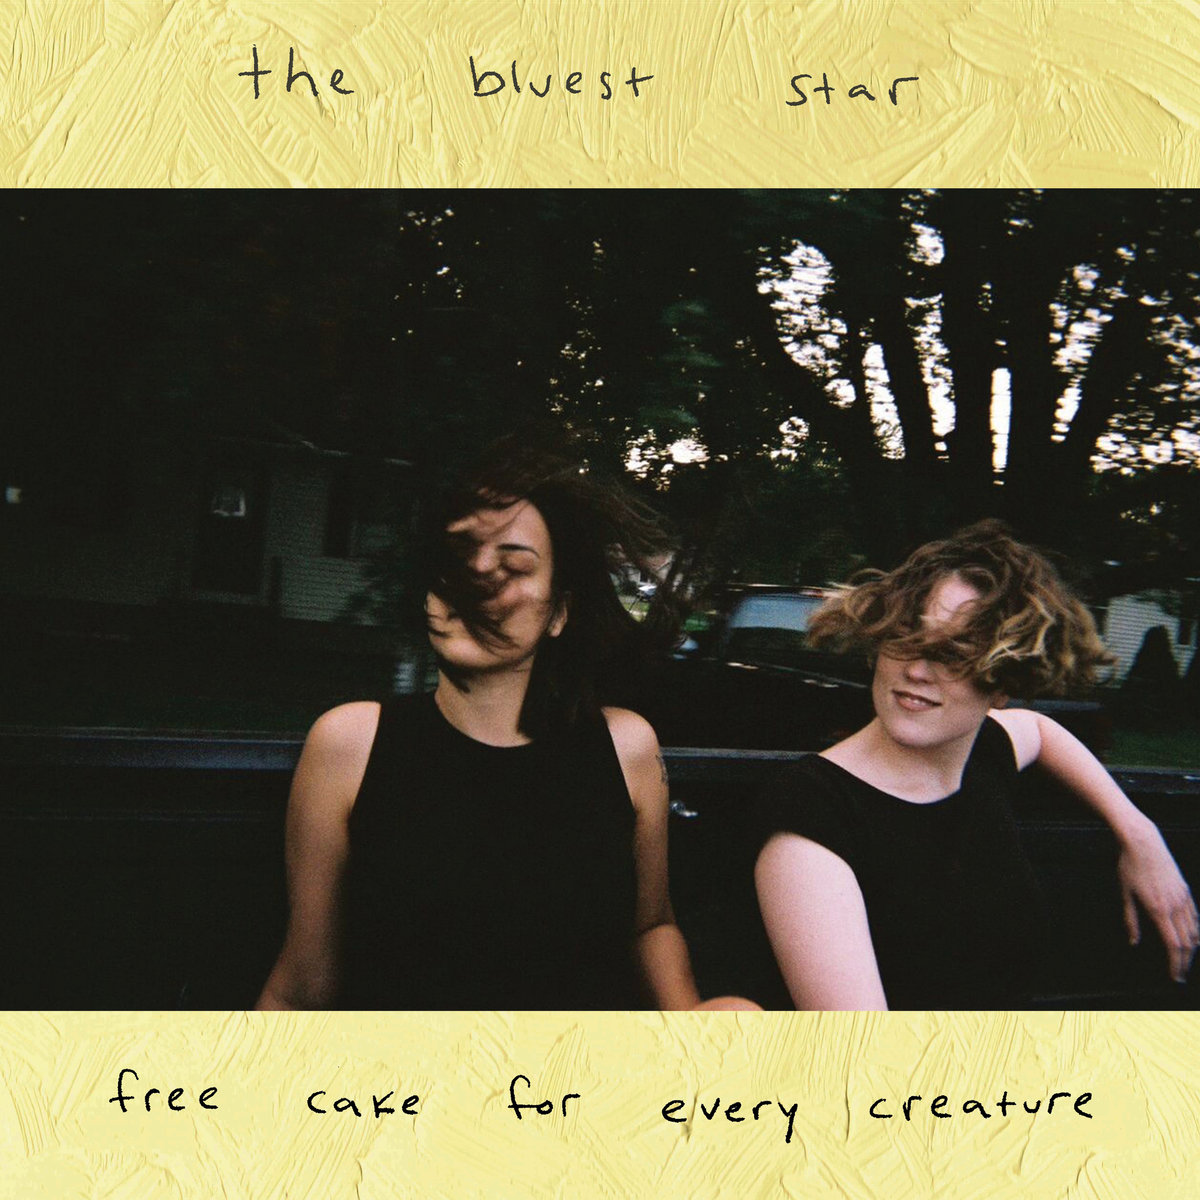 free cake for every creature bluest star album cover